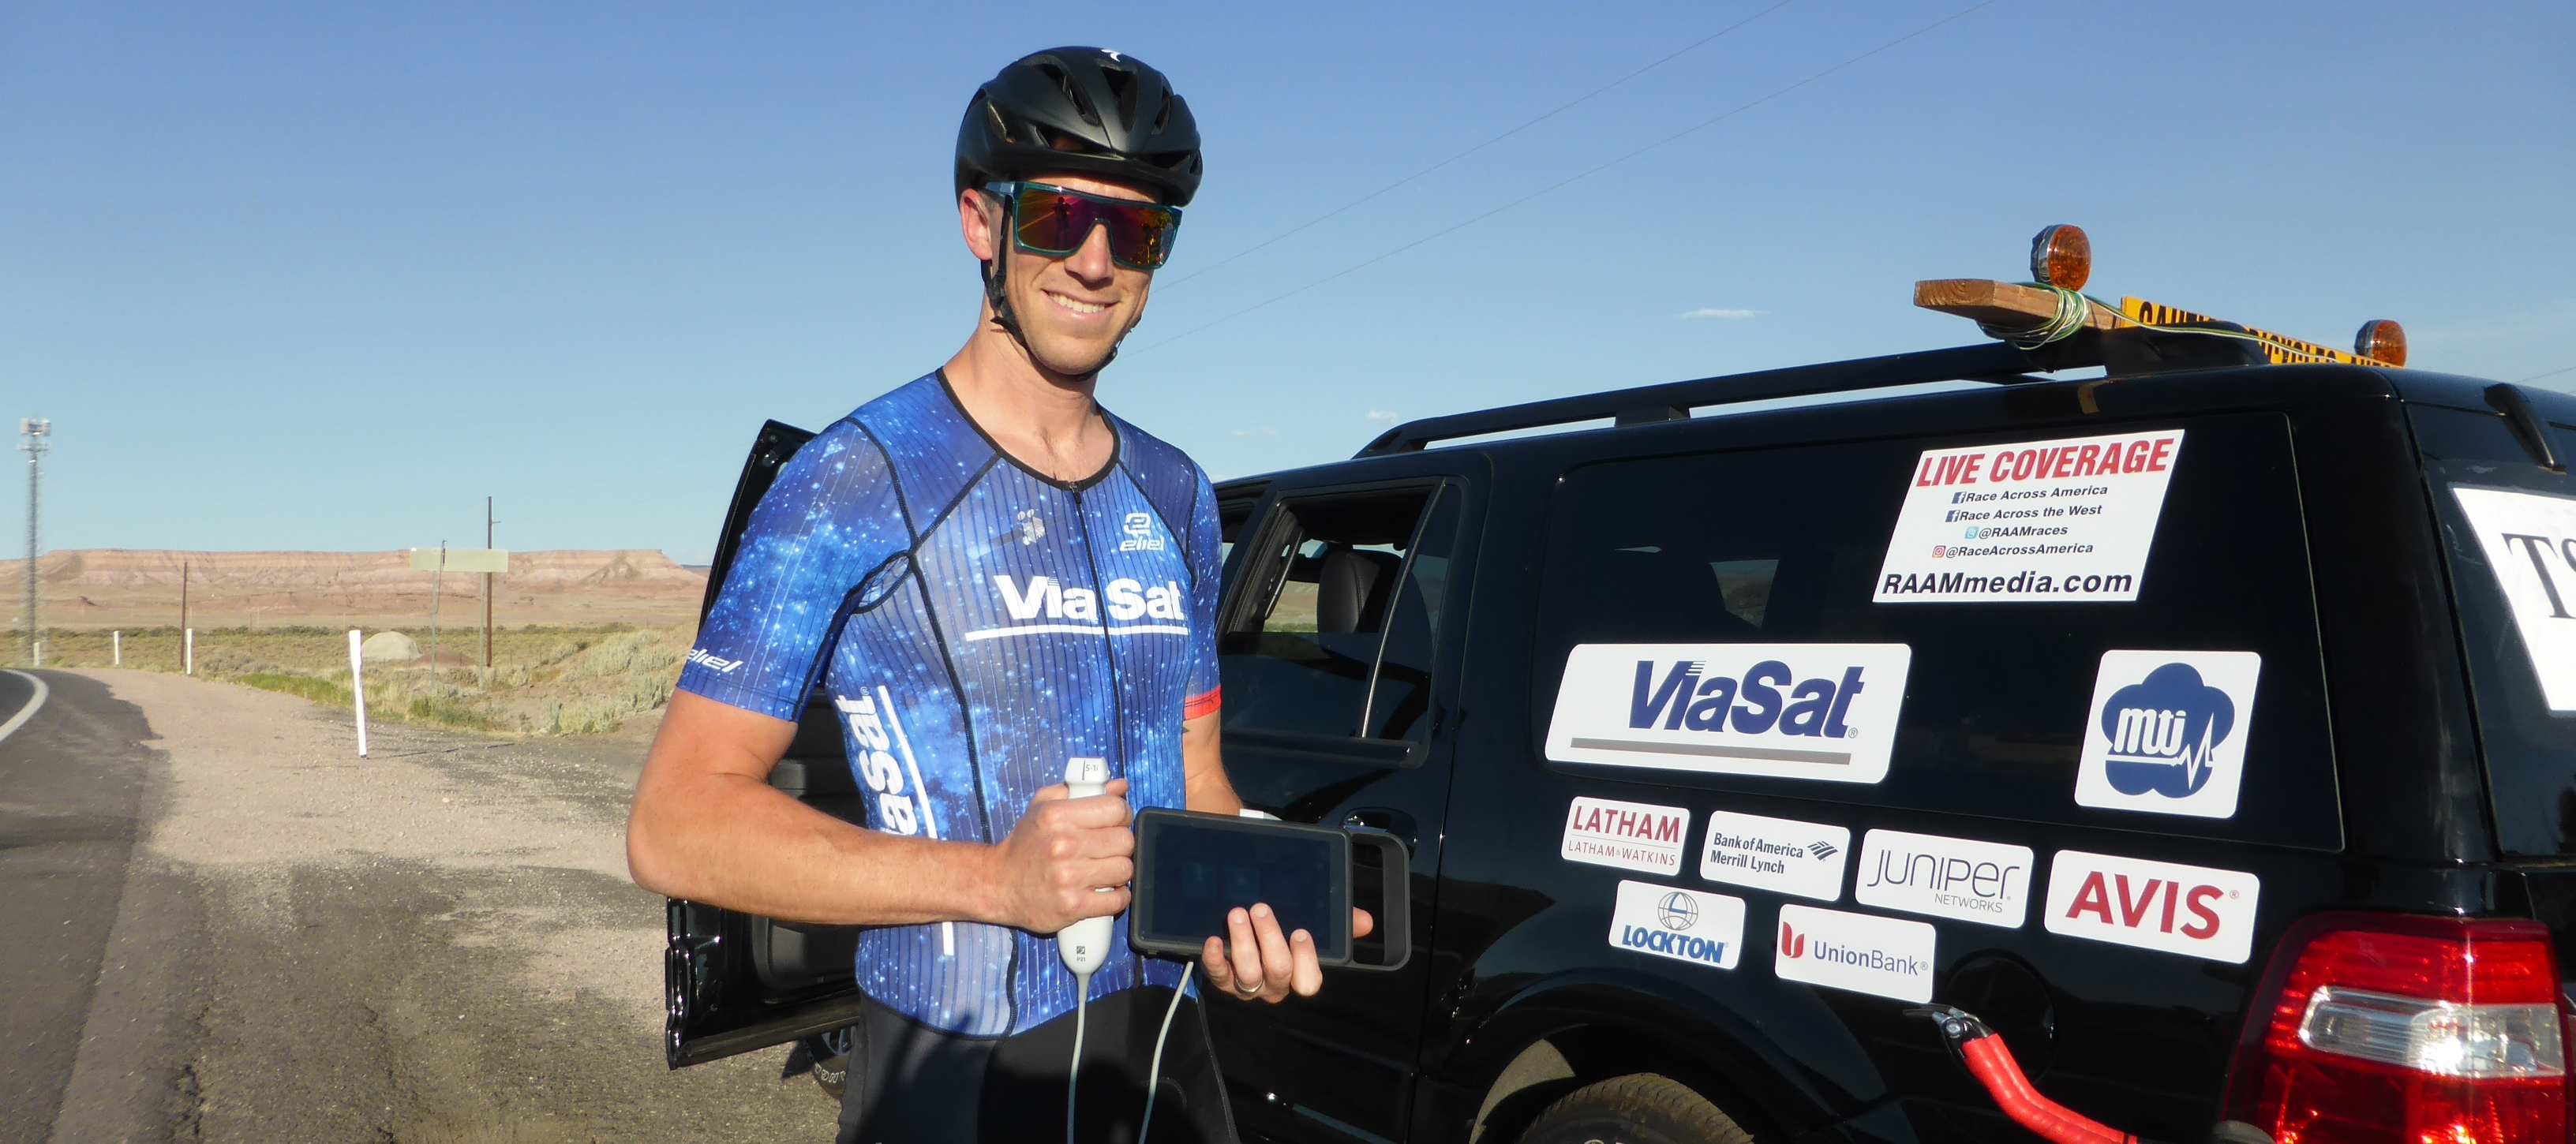 SonoSite iViz Ultrasound Machine Held by Bicyclist at Race Across America Bike Race